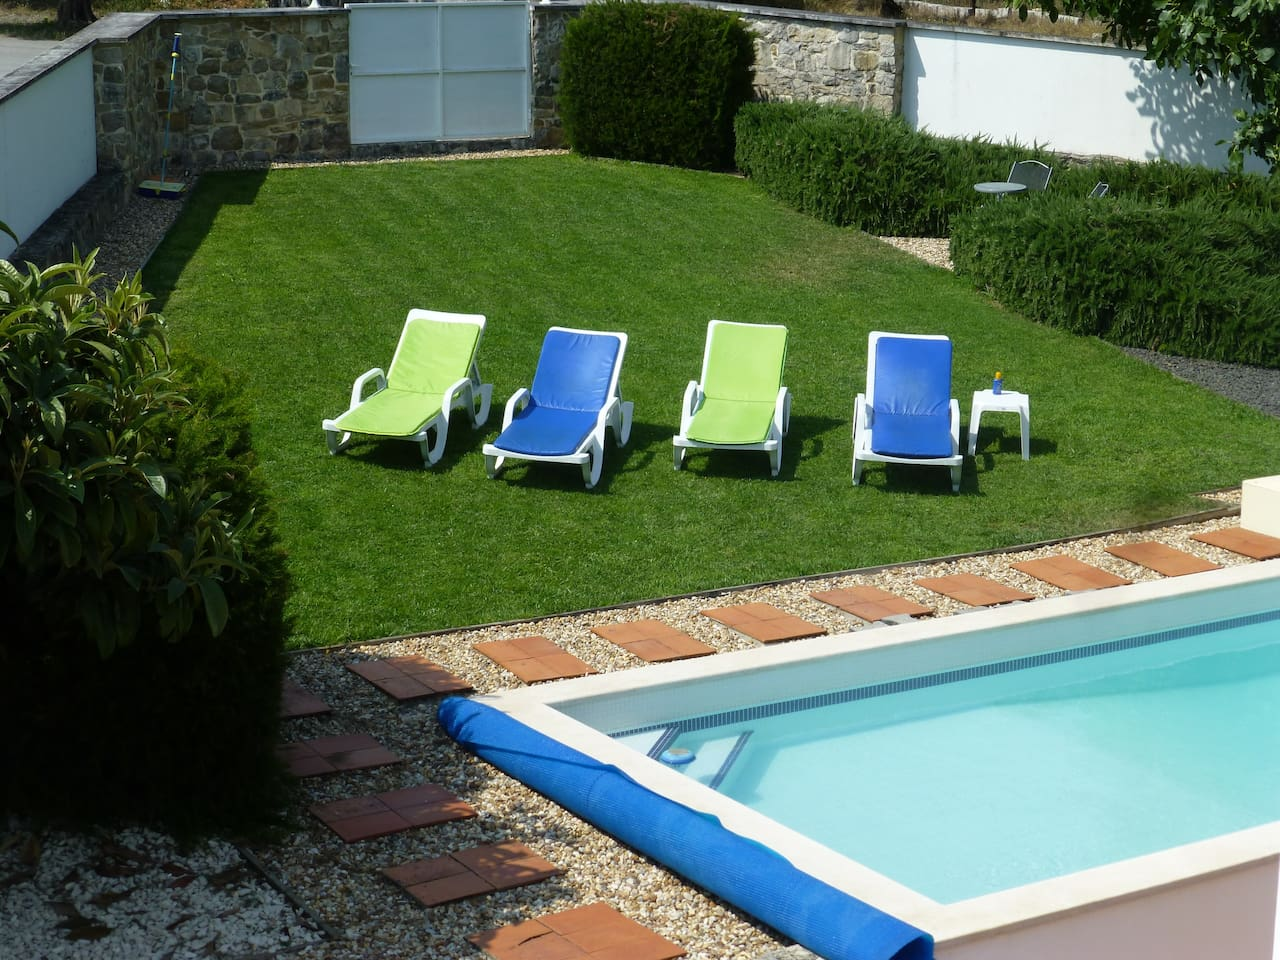 View of the private garden and pool from the roof terrace